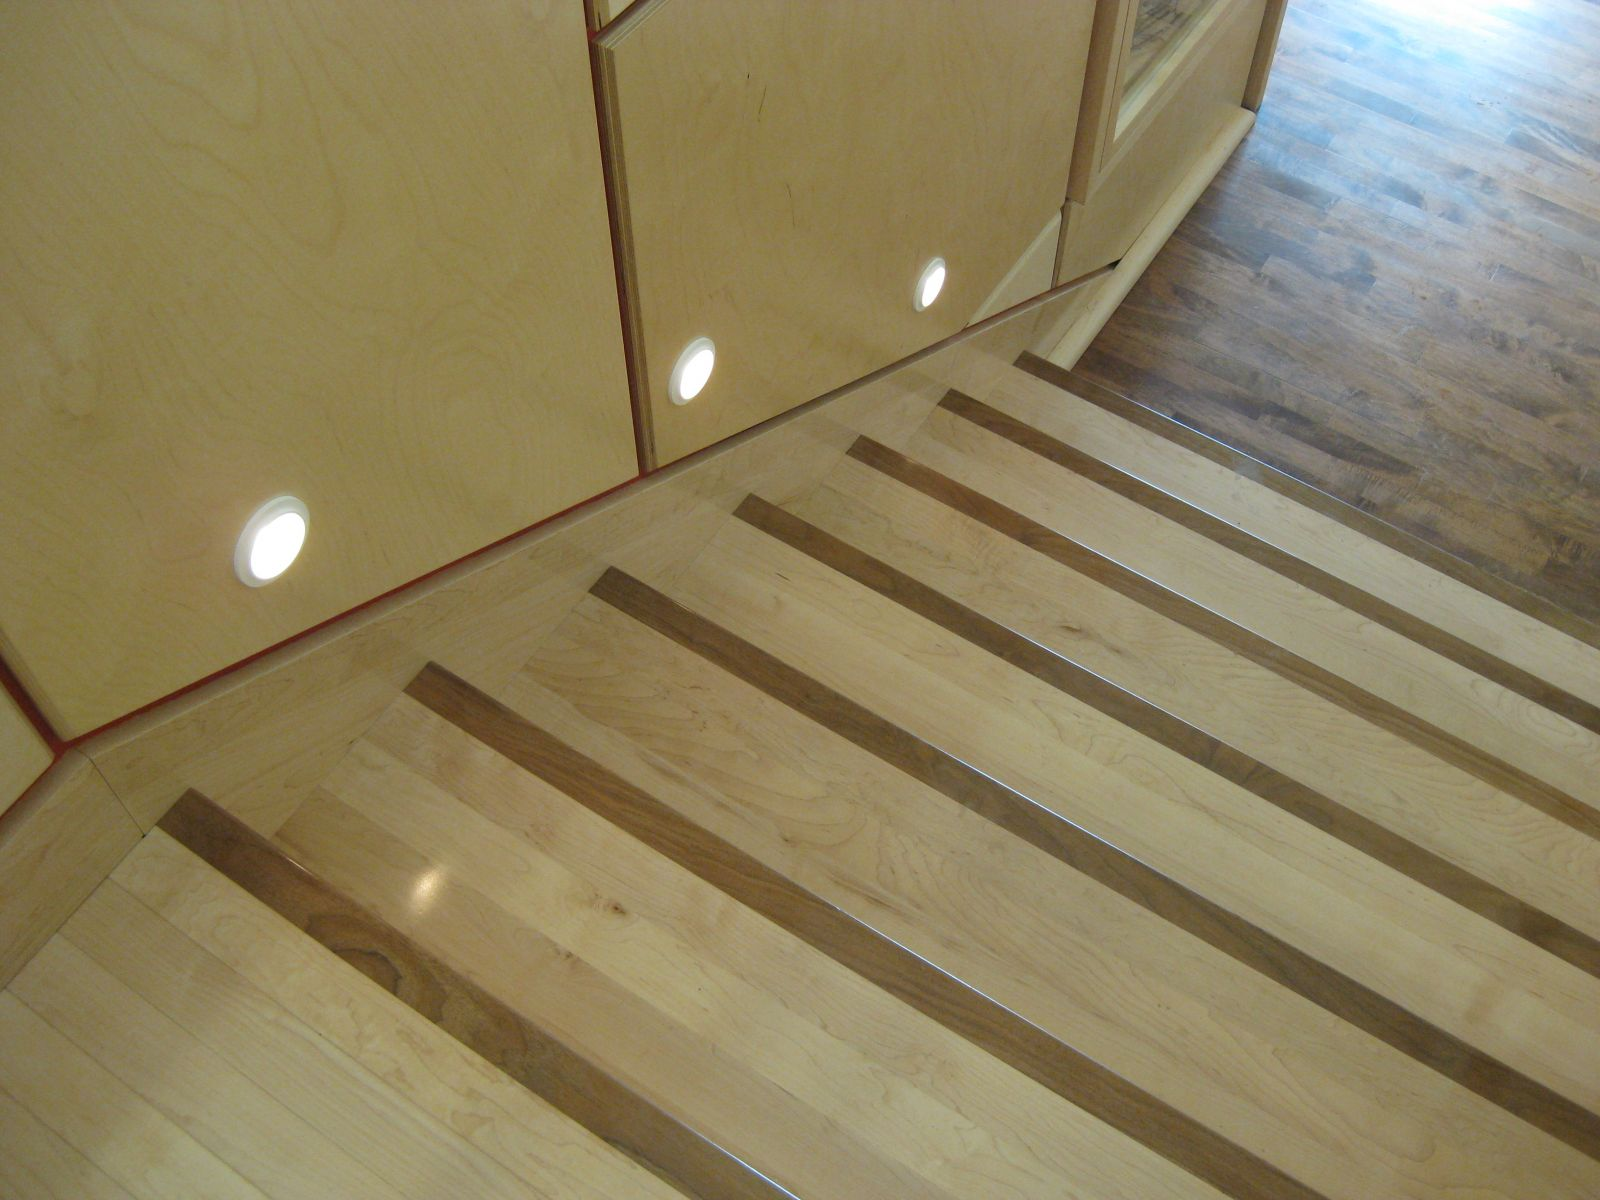 Colour contrasted wood stair nosings and feature lighting at tread level